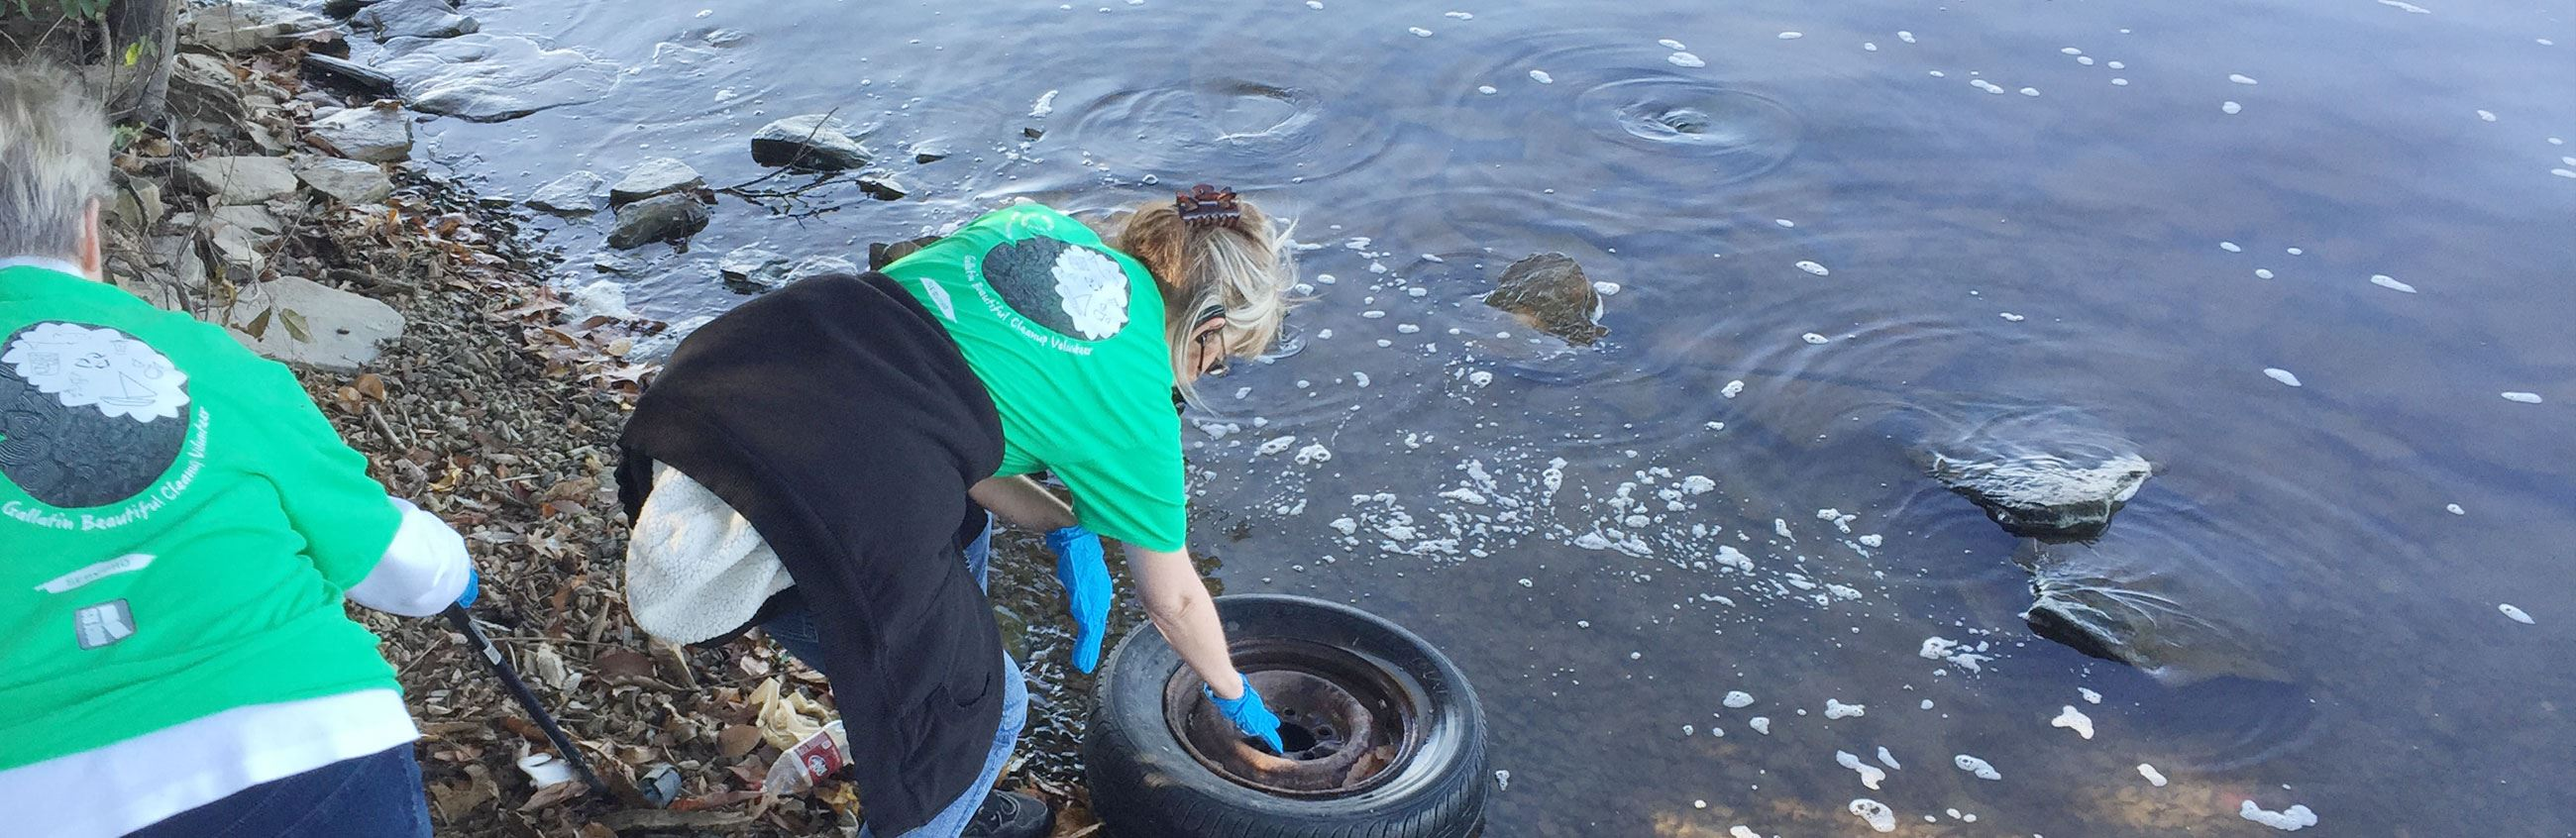 Woman picking up tire along shoreline